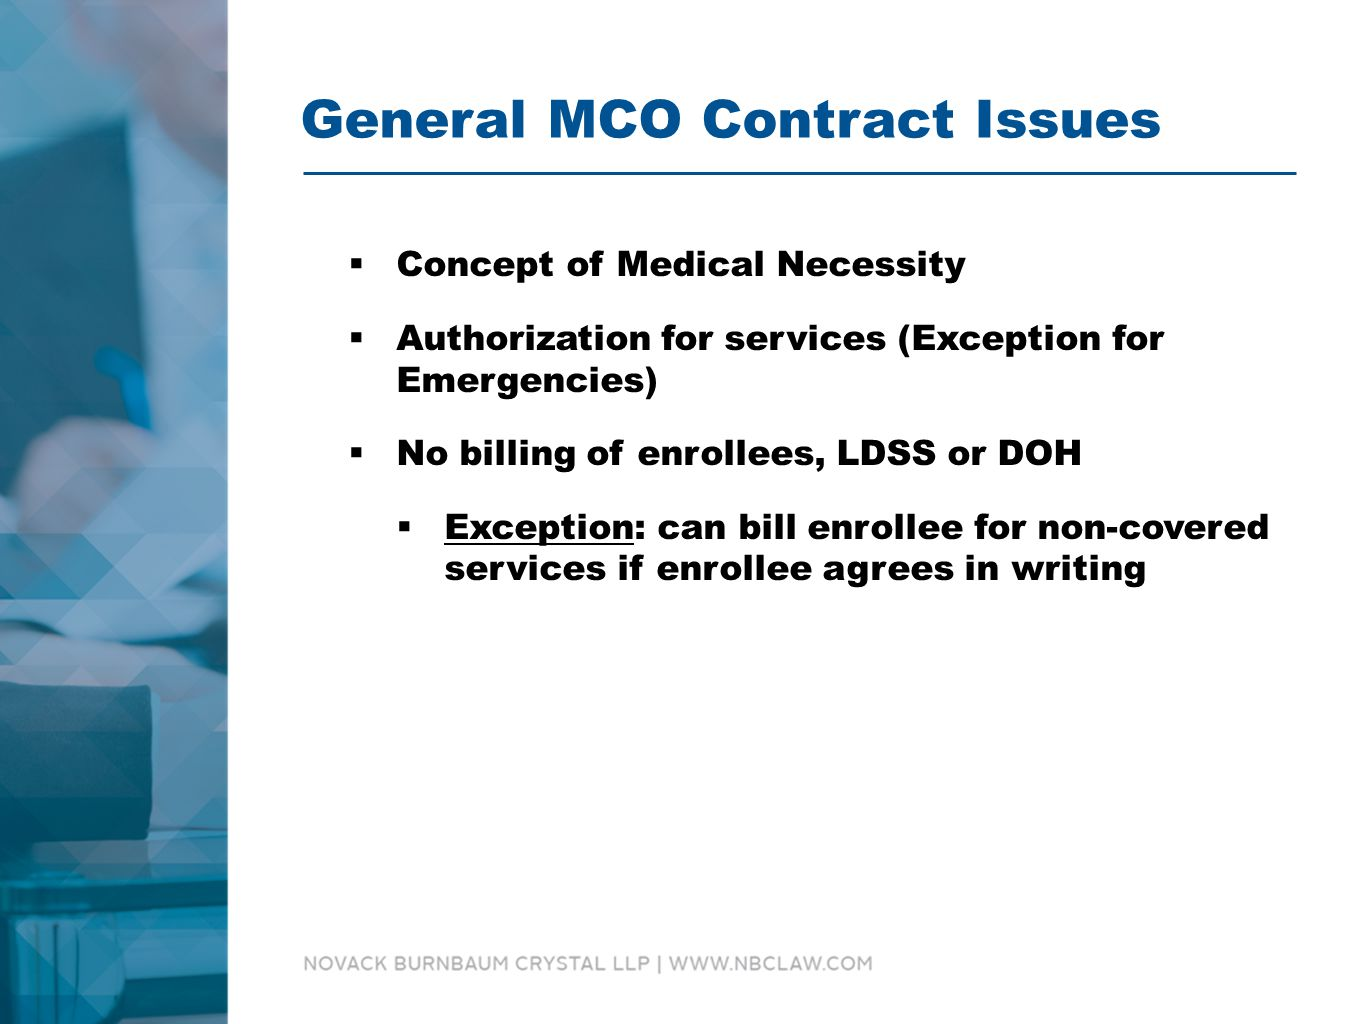 General MCO Contract Issues  Concept of Medical Necessity  Authorization for services (Exception for Emergencies)  No billing of enrollees, LDSS or DOH  Exception: can bill enrollee for non-covered services if enrollee agrees in writing